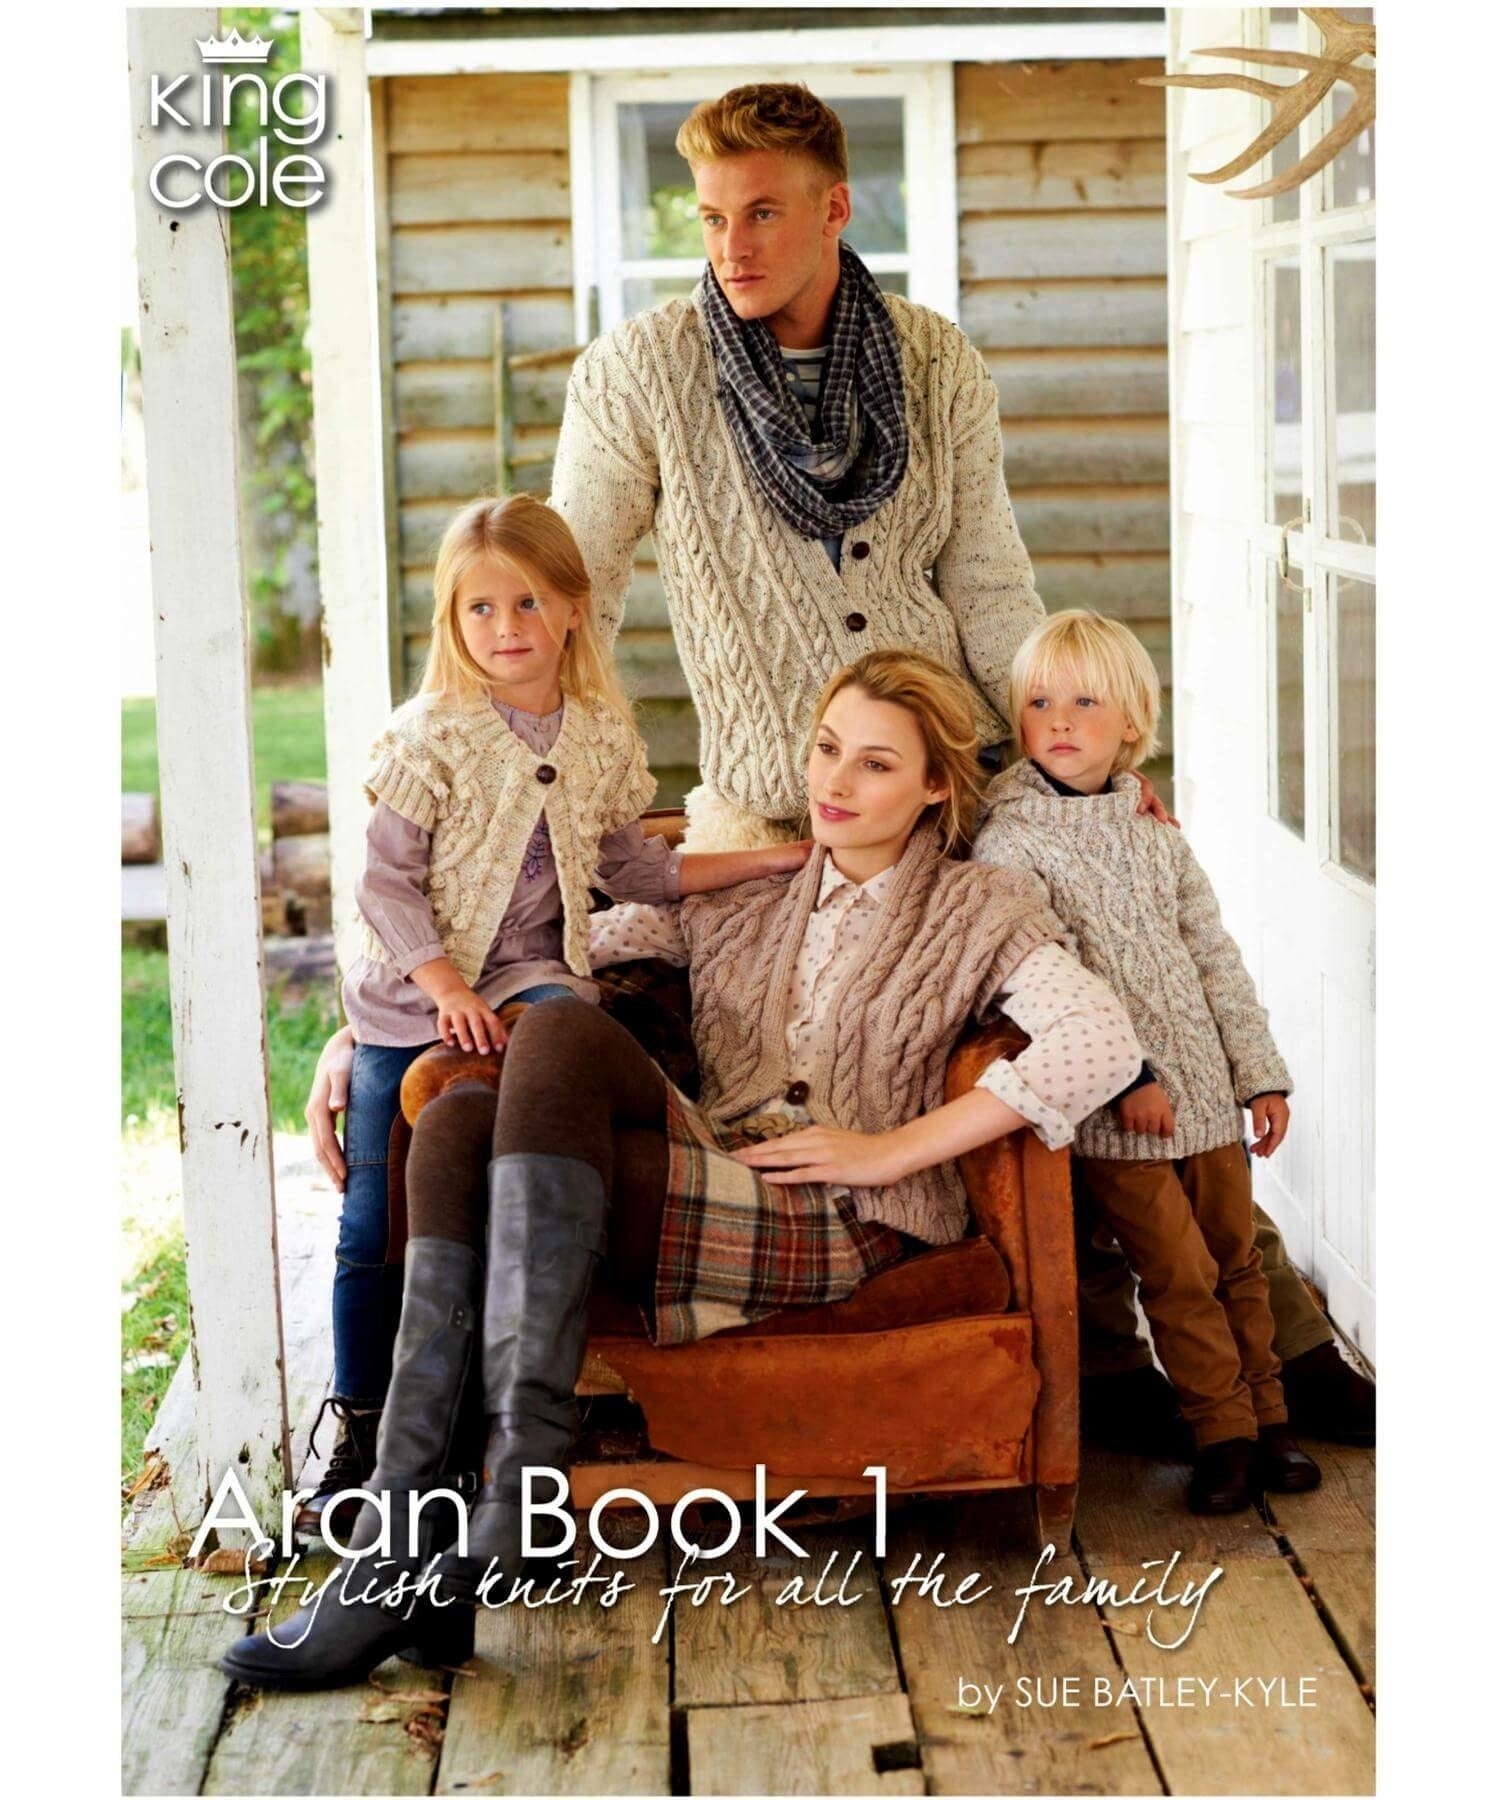 King Cole Aran Book 1 - [Springwools] - Knitting - Irish Gifts